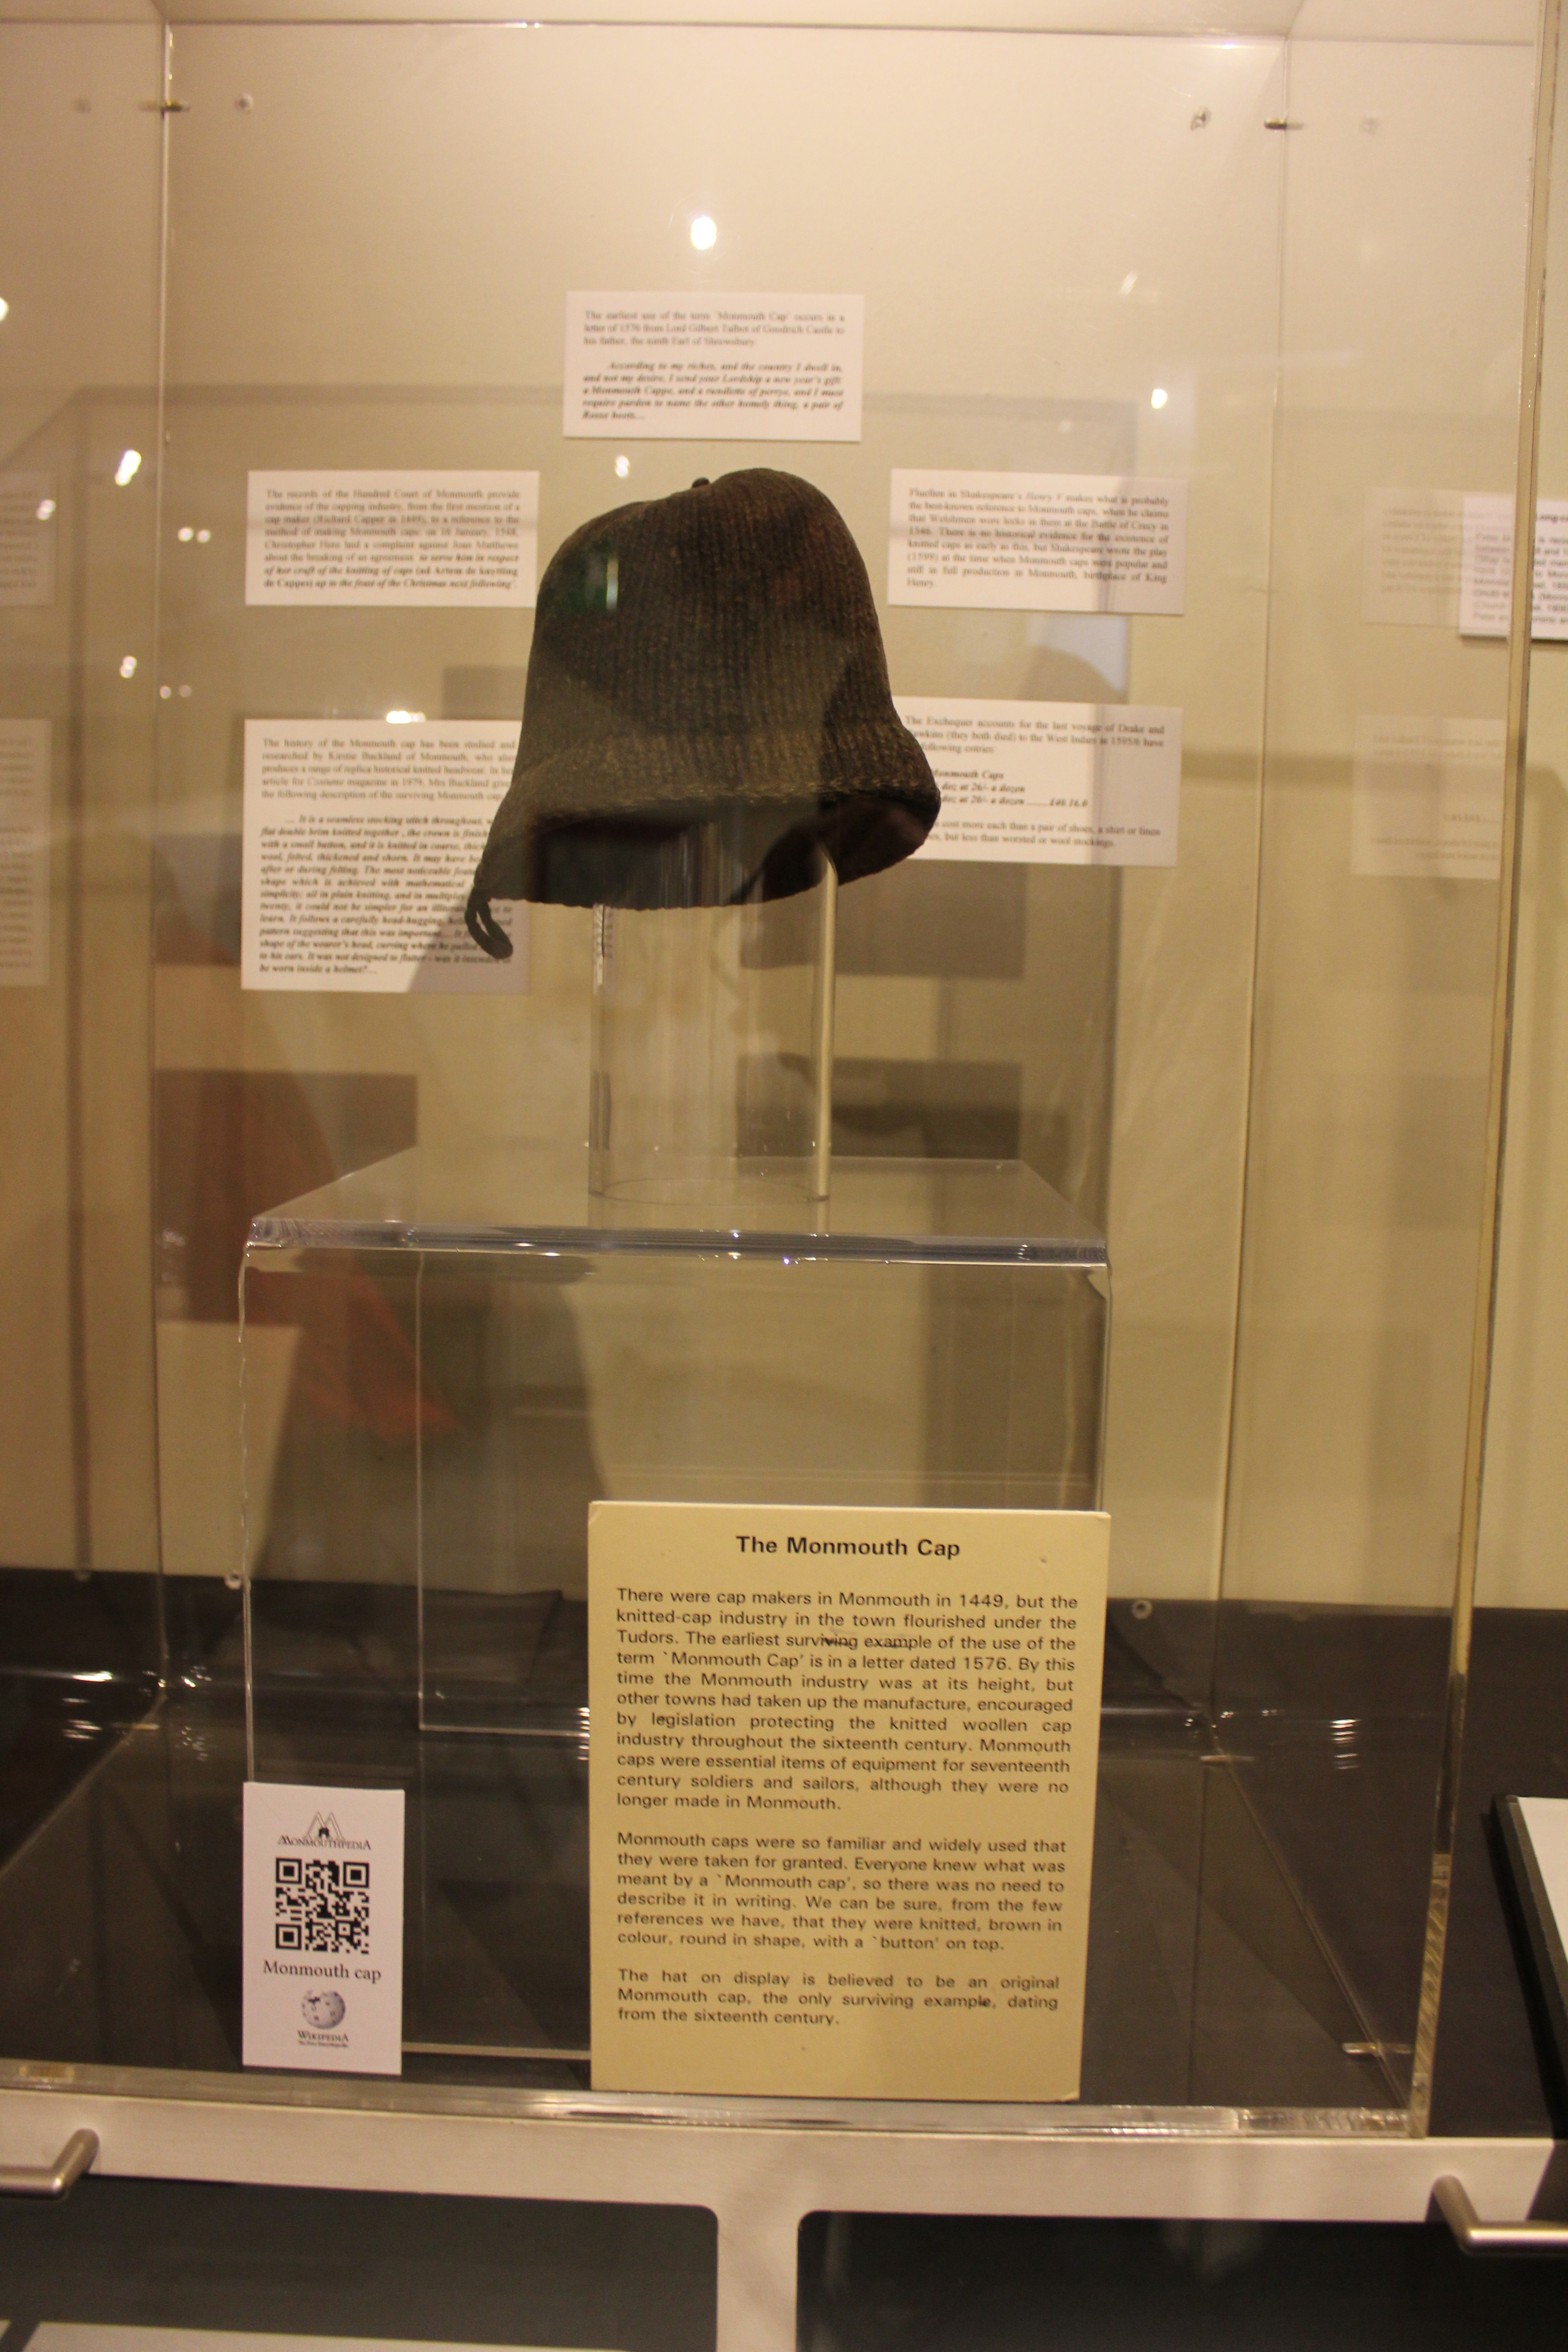 dbecd5de4ed Bestand Monmouth Cap display at Monmouth Museum with QRpedia code ...